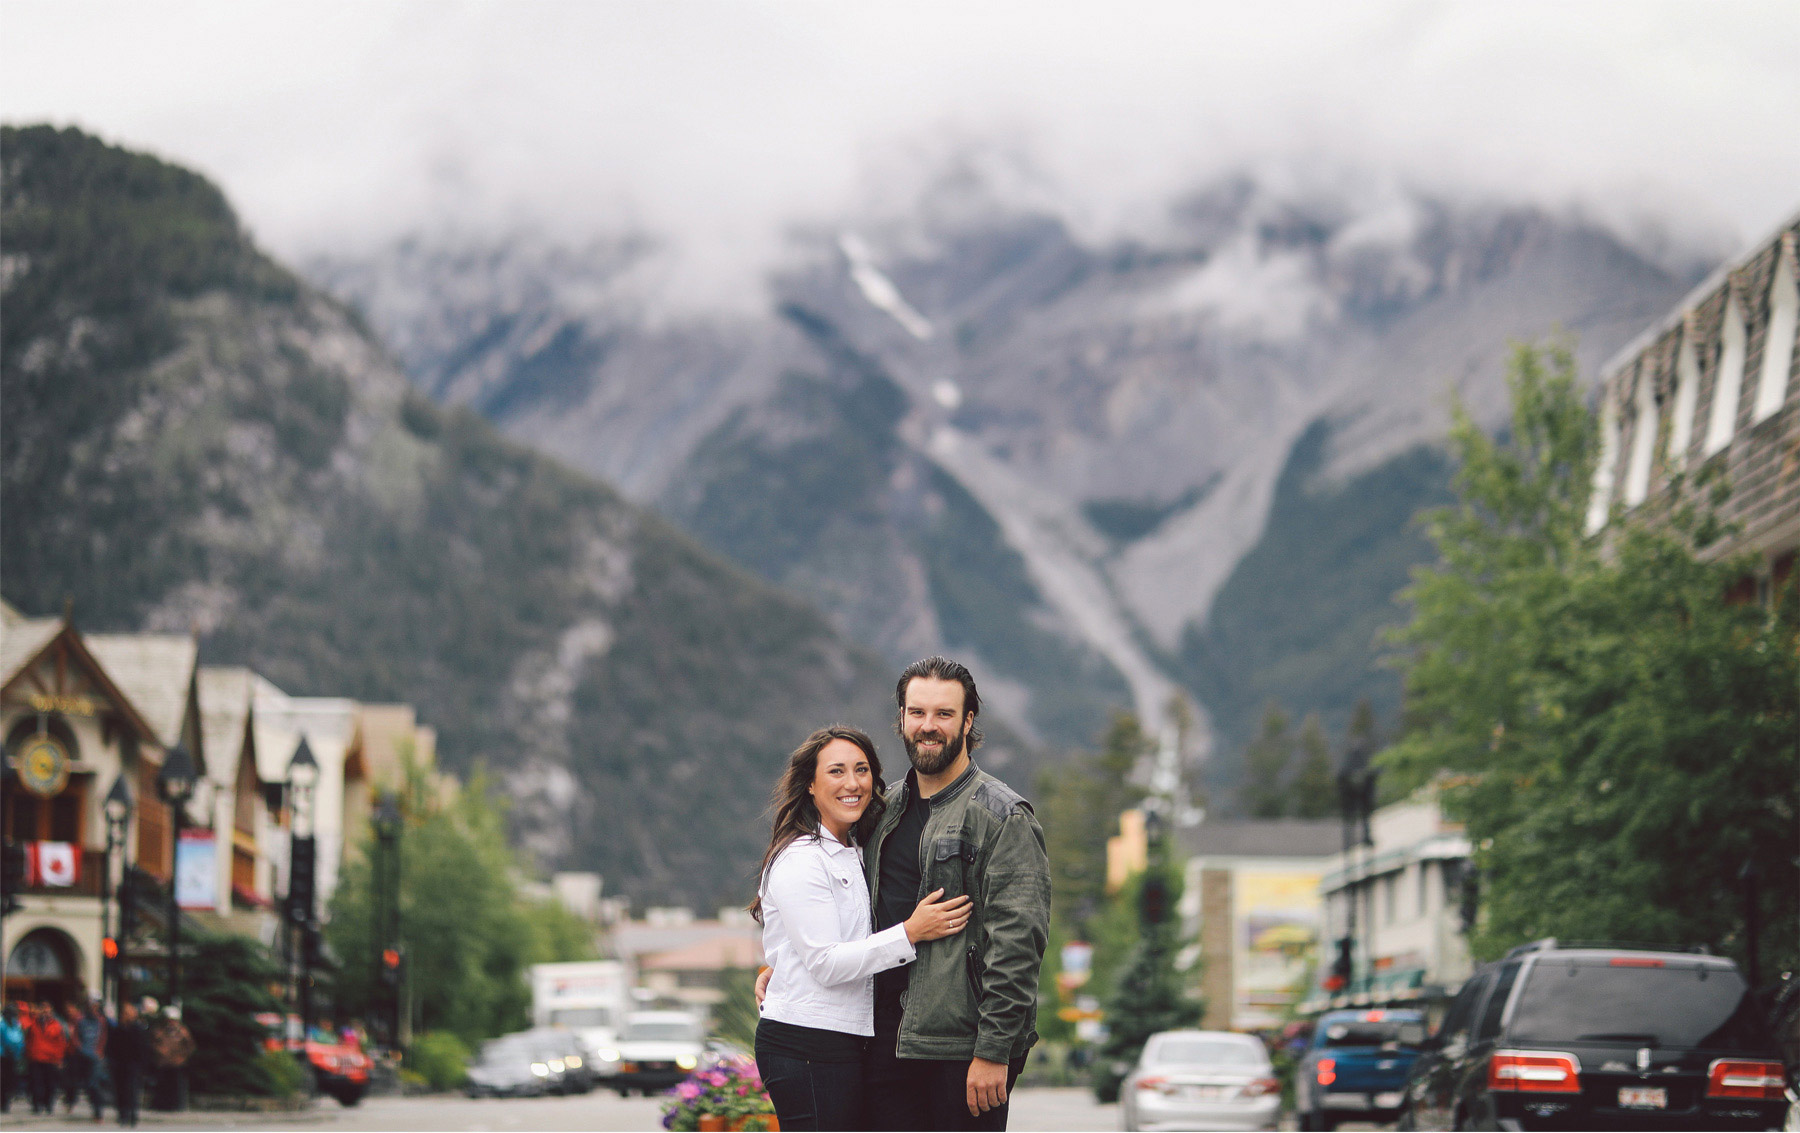 01-Calgary-Canada-Engagement-Photography-by-Vick-Photography-Mountains-Lizz-and-Brady.jpg